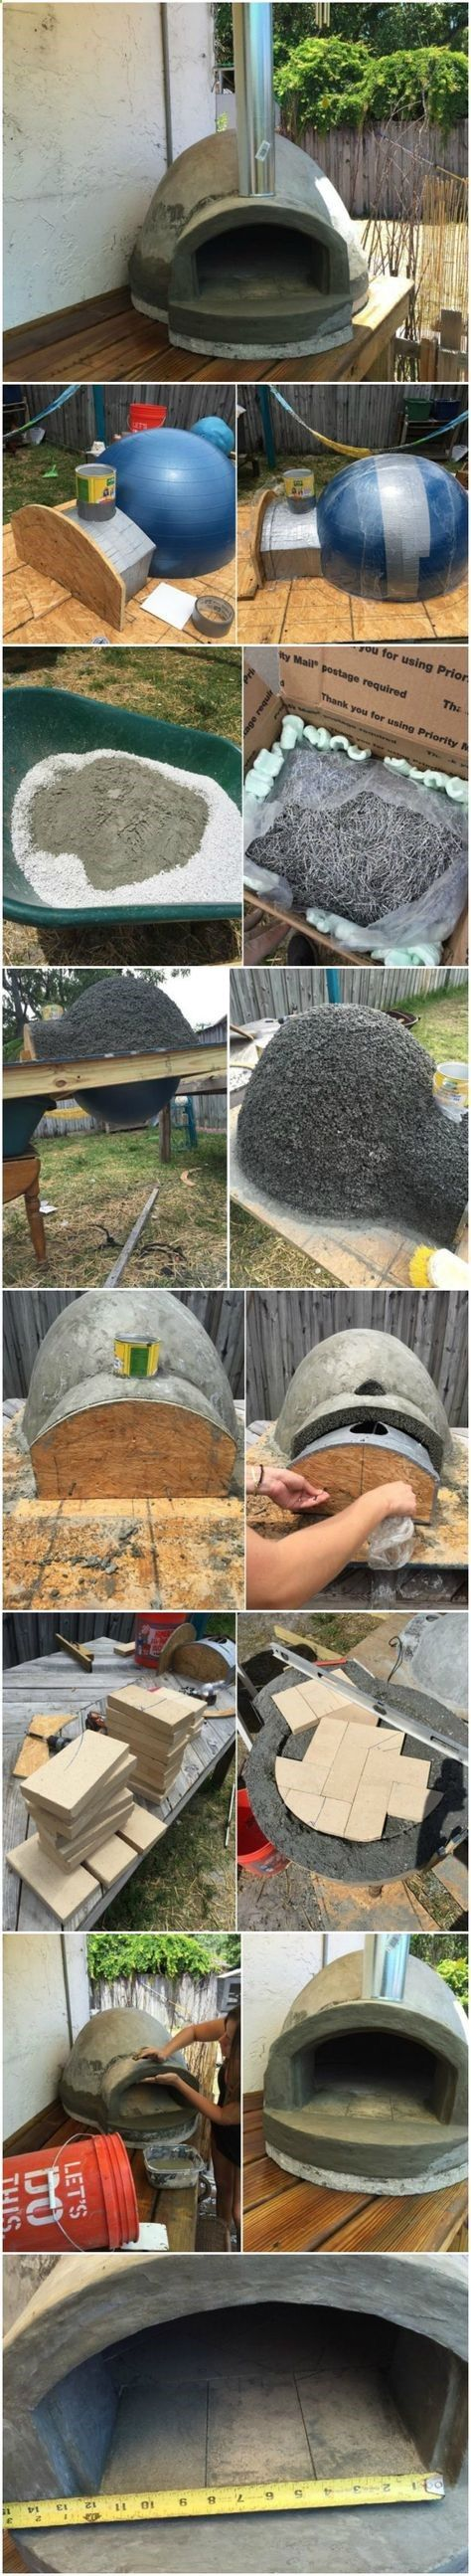 Shed Plans - Shed Plans - Wood fired Pizza Oven made with an exercise ball for $135 Now You Can Build ANY Shed In A Weekend Even If Youve Zero Woodworking Experience! Now You Can Build ANY Shed In A Weekend Even If You've Zero Woodworking Experience!